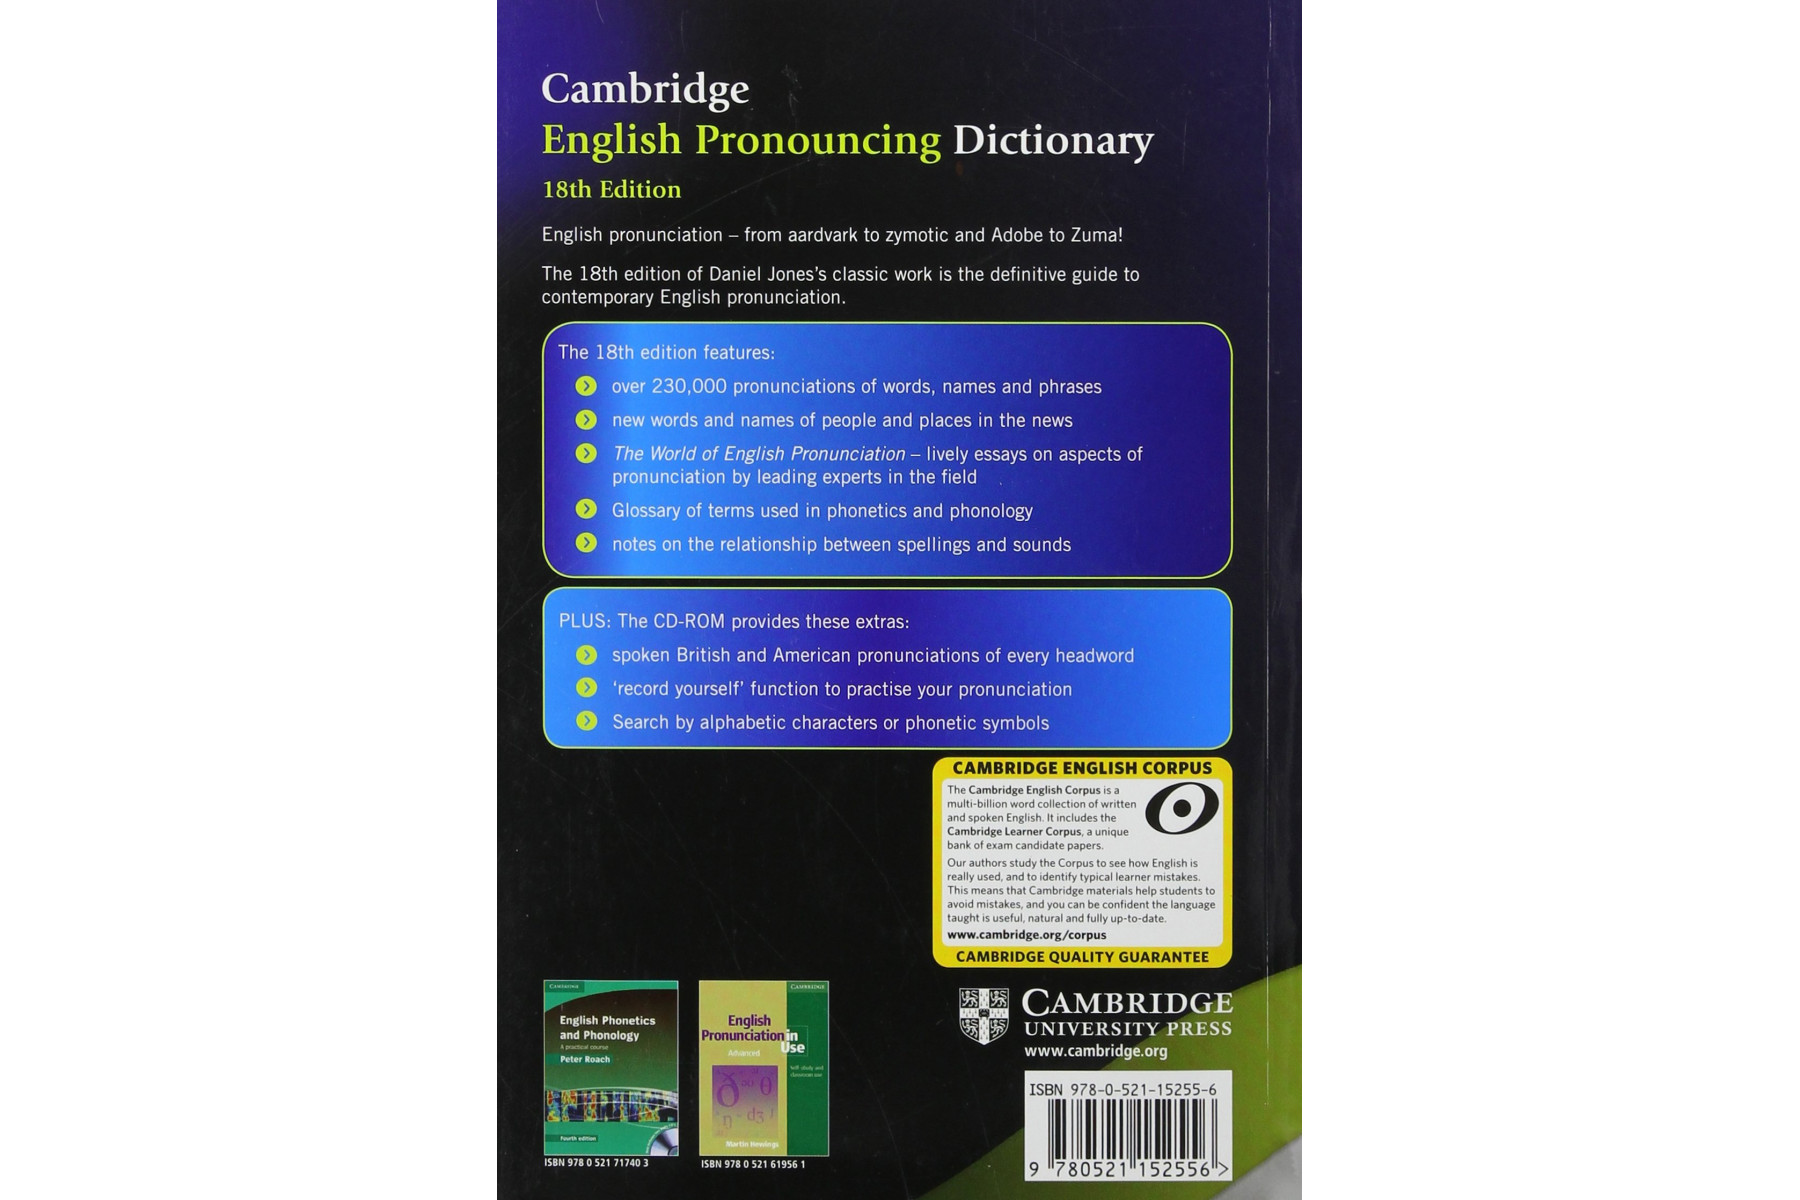 English Pronouncing Dictionary + CD-ROM 18th Edition